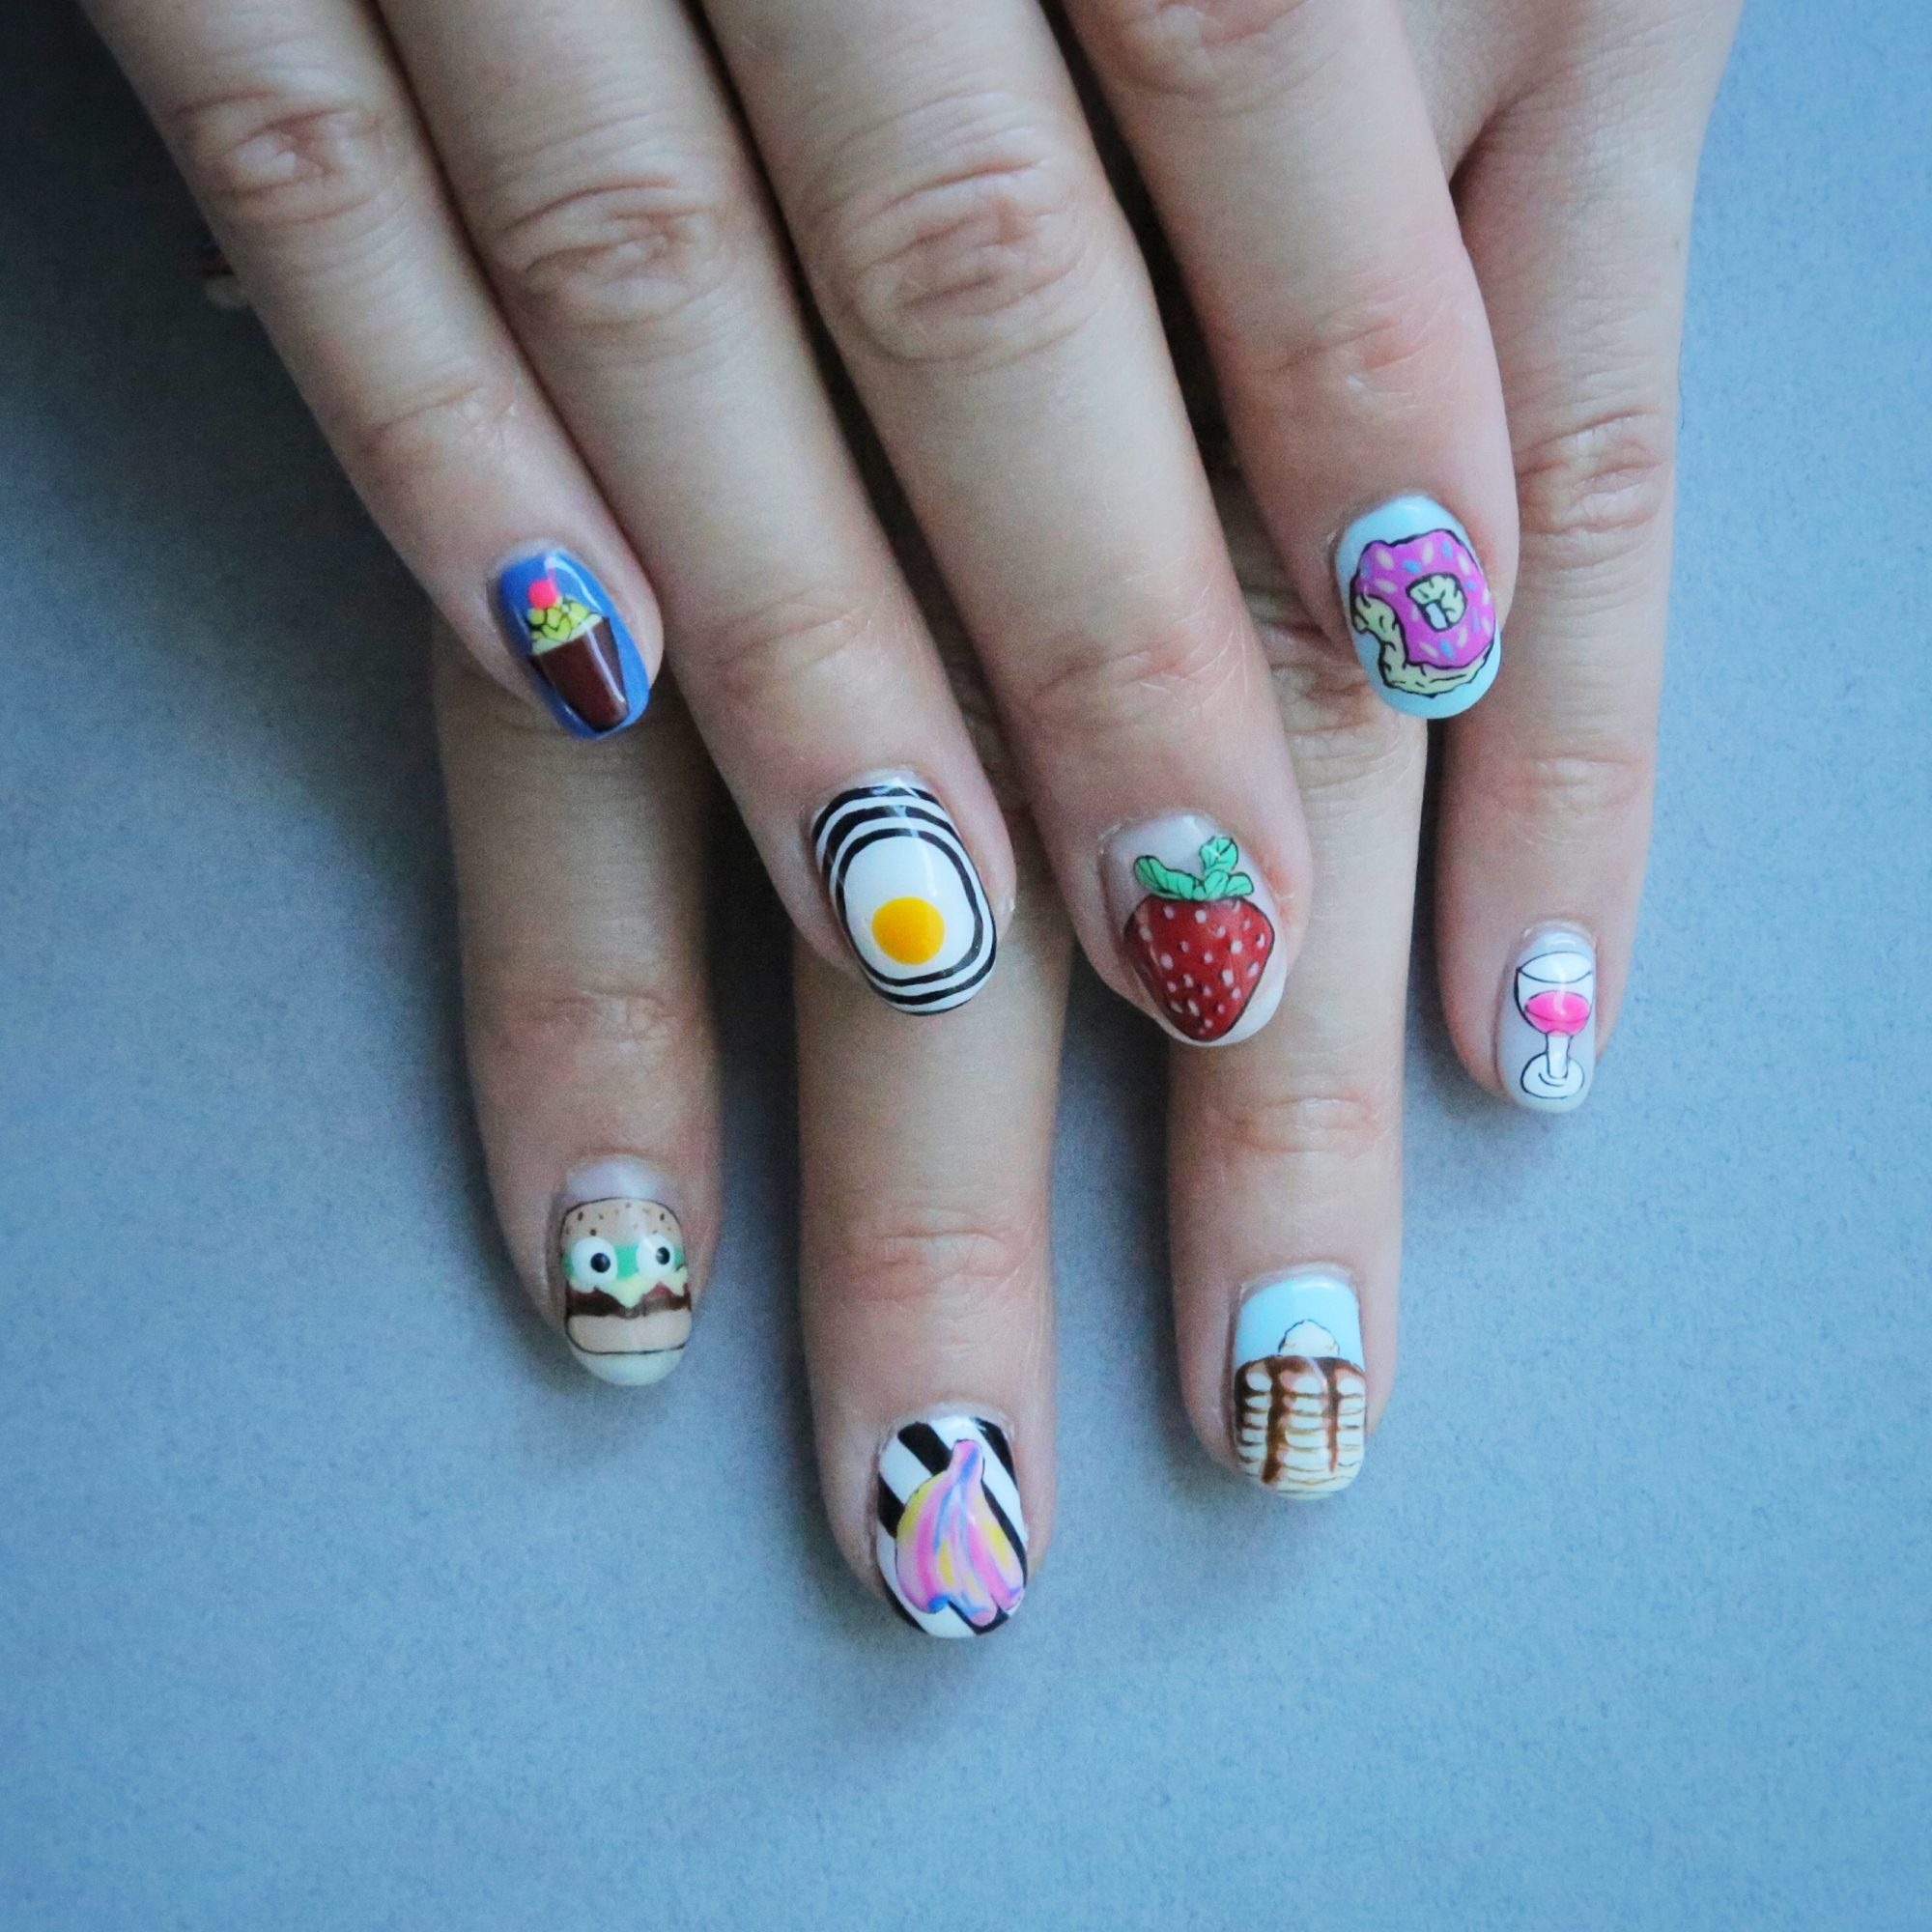 The Best Bright Food Nail Art To Celebrate The First Day Of Spring